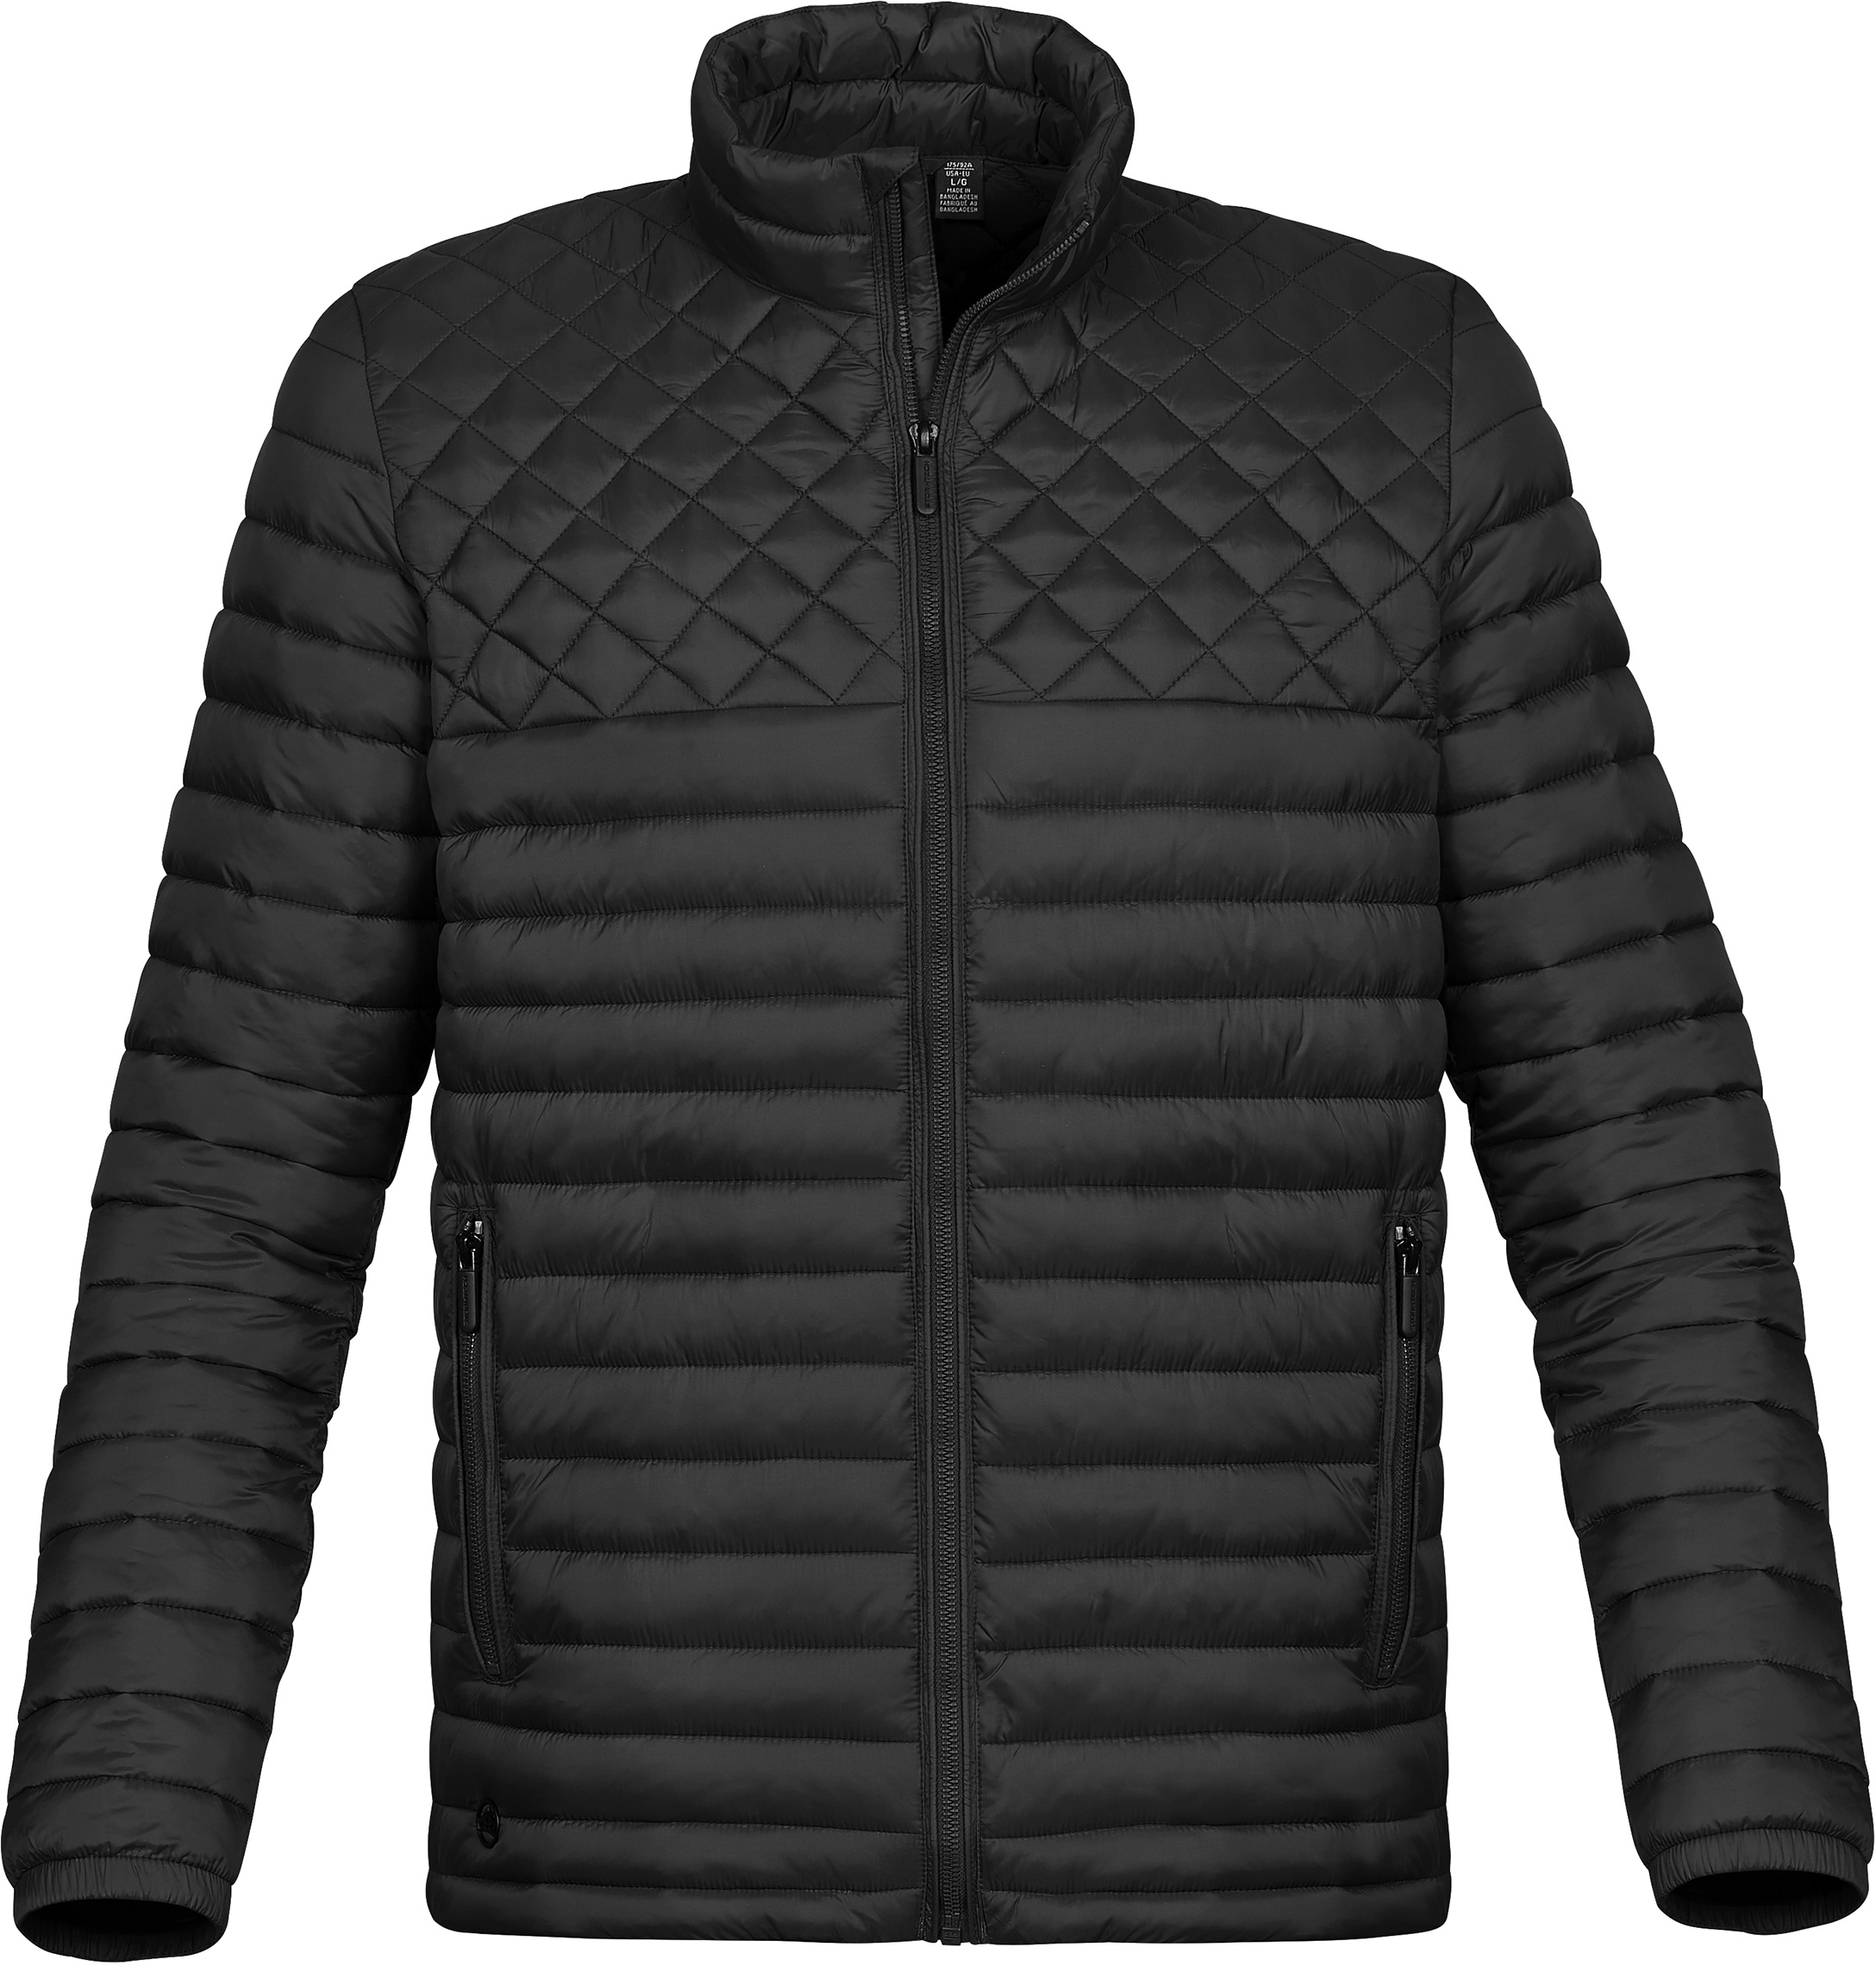 Stormtech QS-1 - Men's Equinox Thermal Shell Jacket